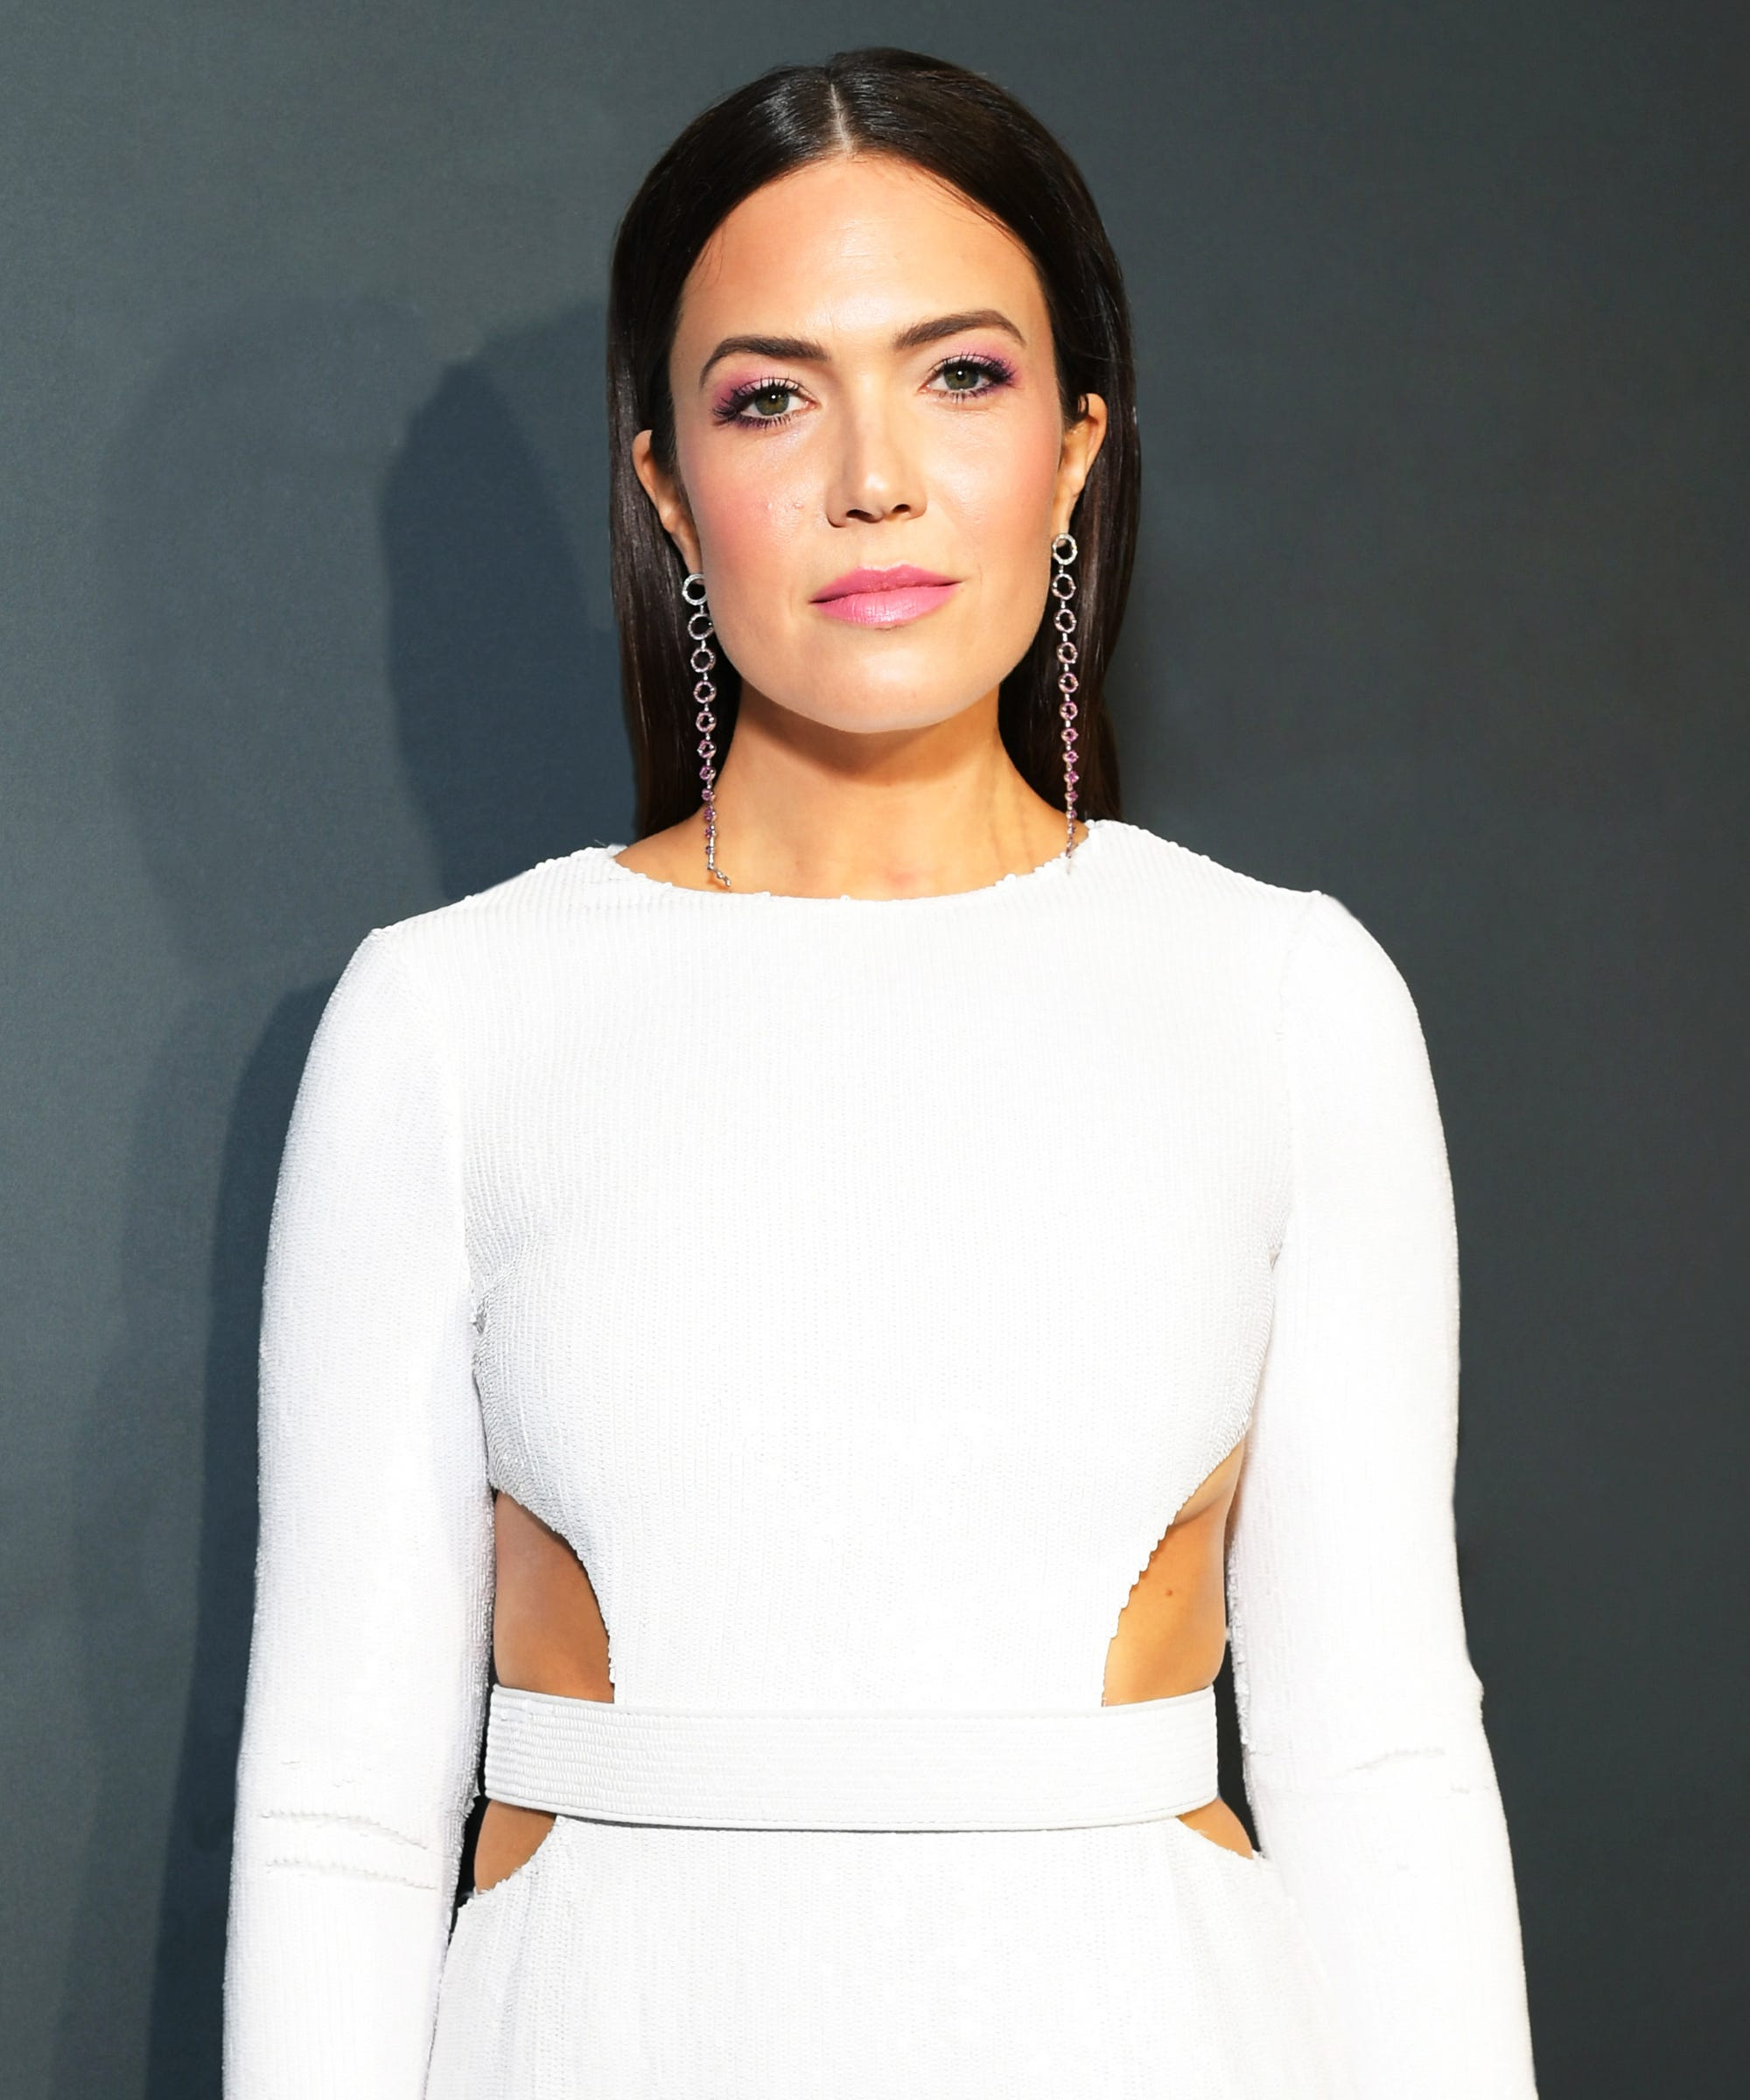 """Mandy Moore To Survivors Of Psychological Abuse: """"You're Not Alone"""""""